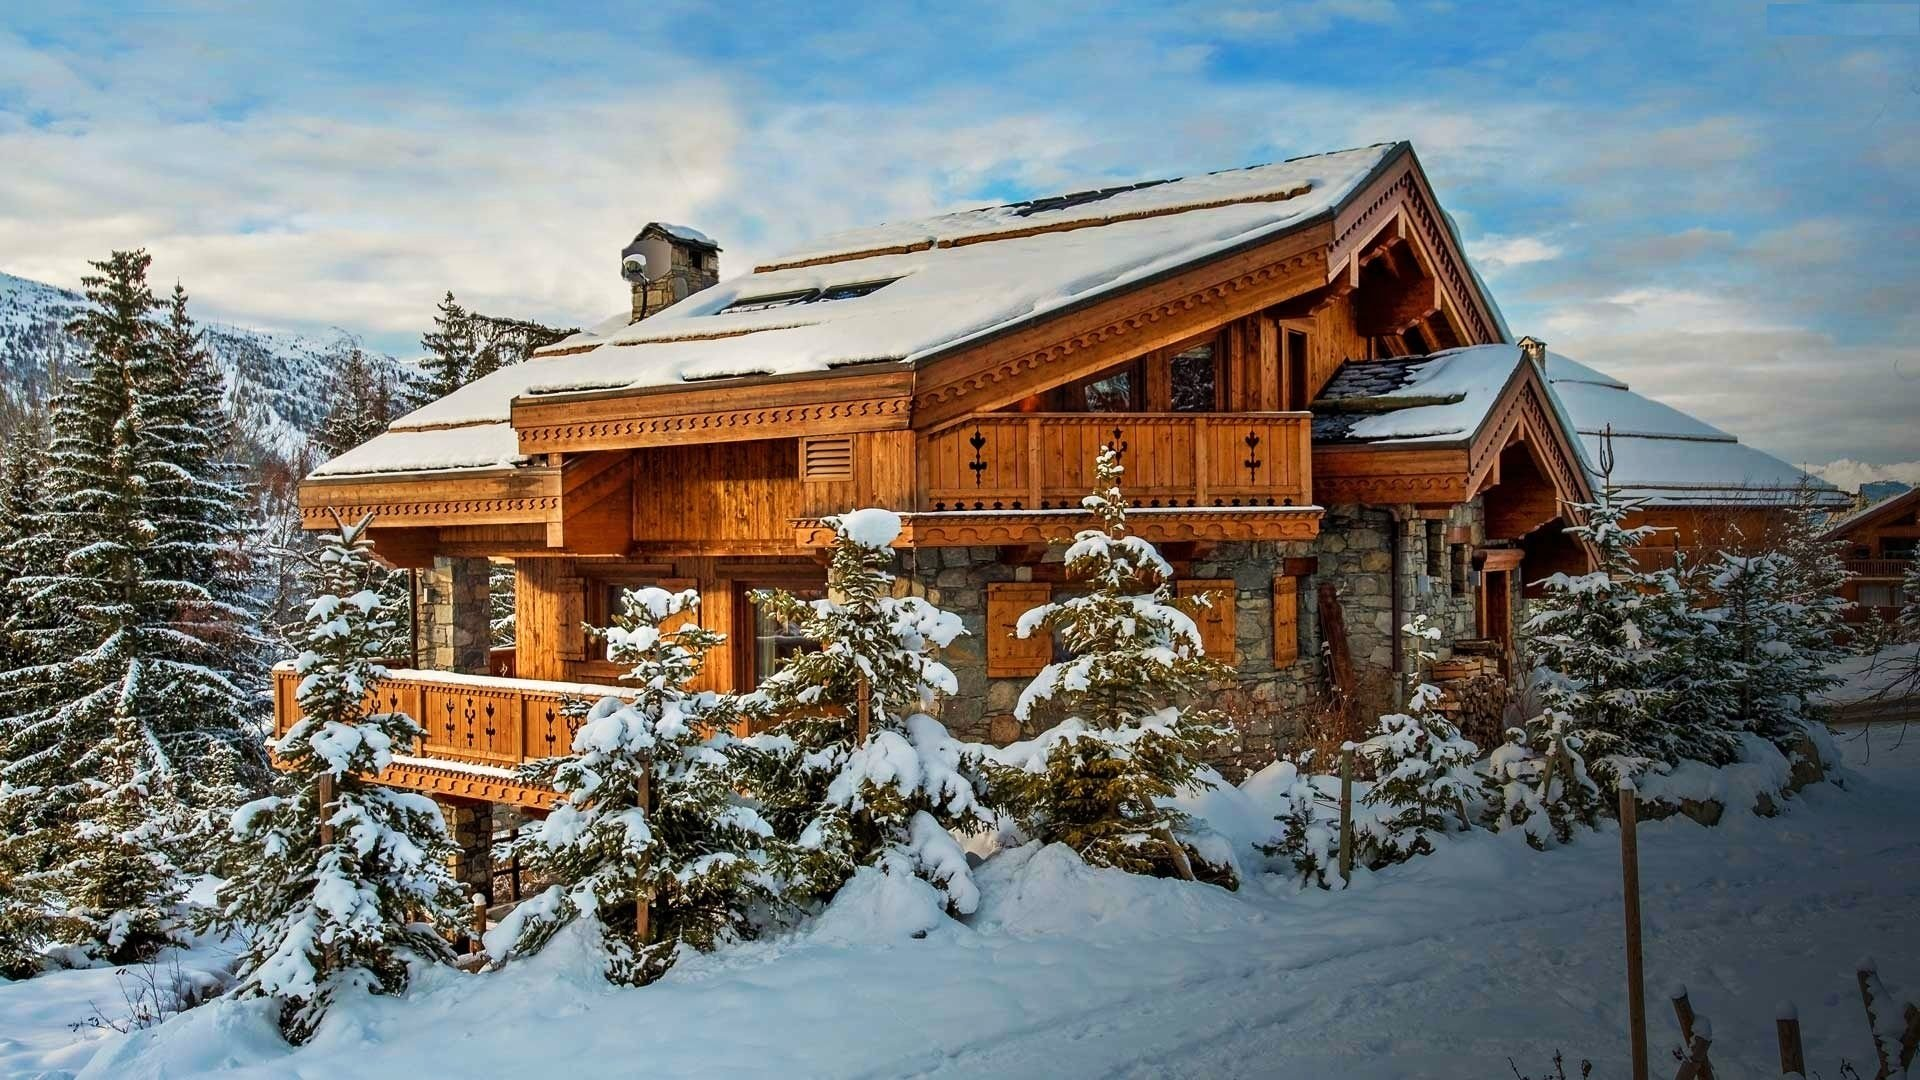 ski lodge in winter - photo #4